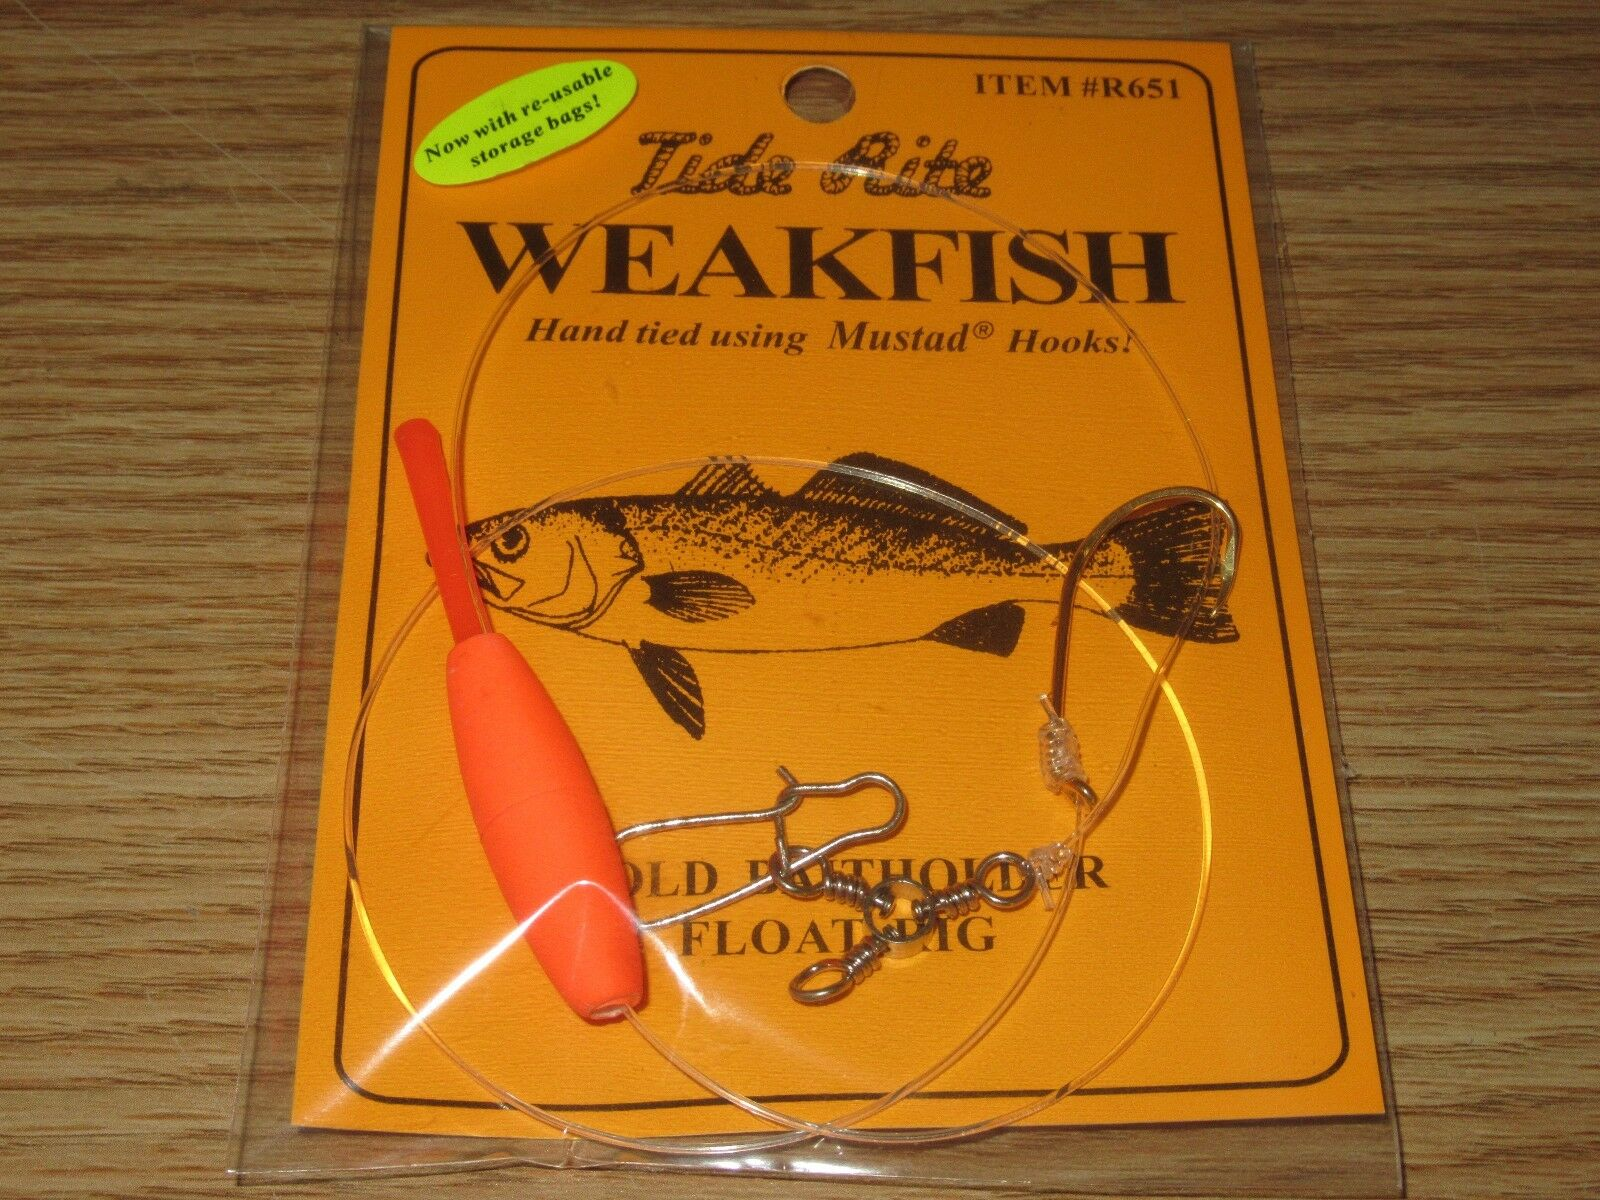 24 WEAKFISH SEA TROUT TIDE RITE R651 BAITHOLDER  FLOAT RIG  FISHING MUSTAD HOOKS  factory outlet store